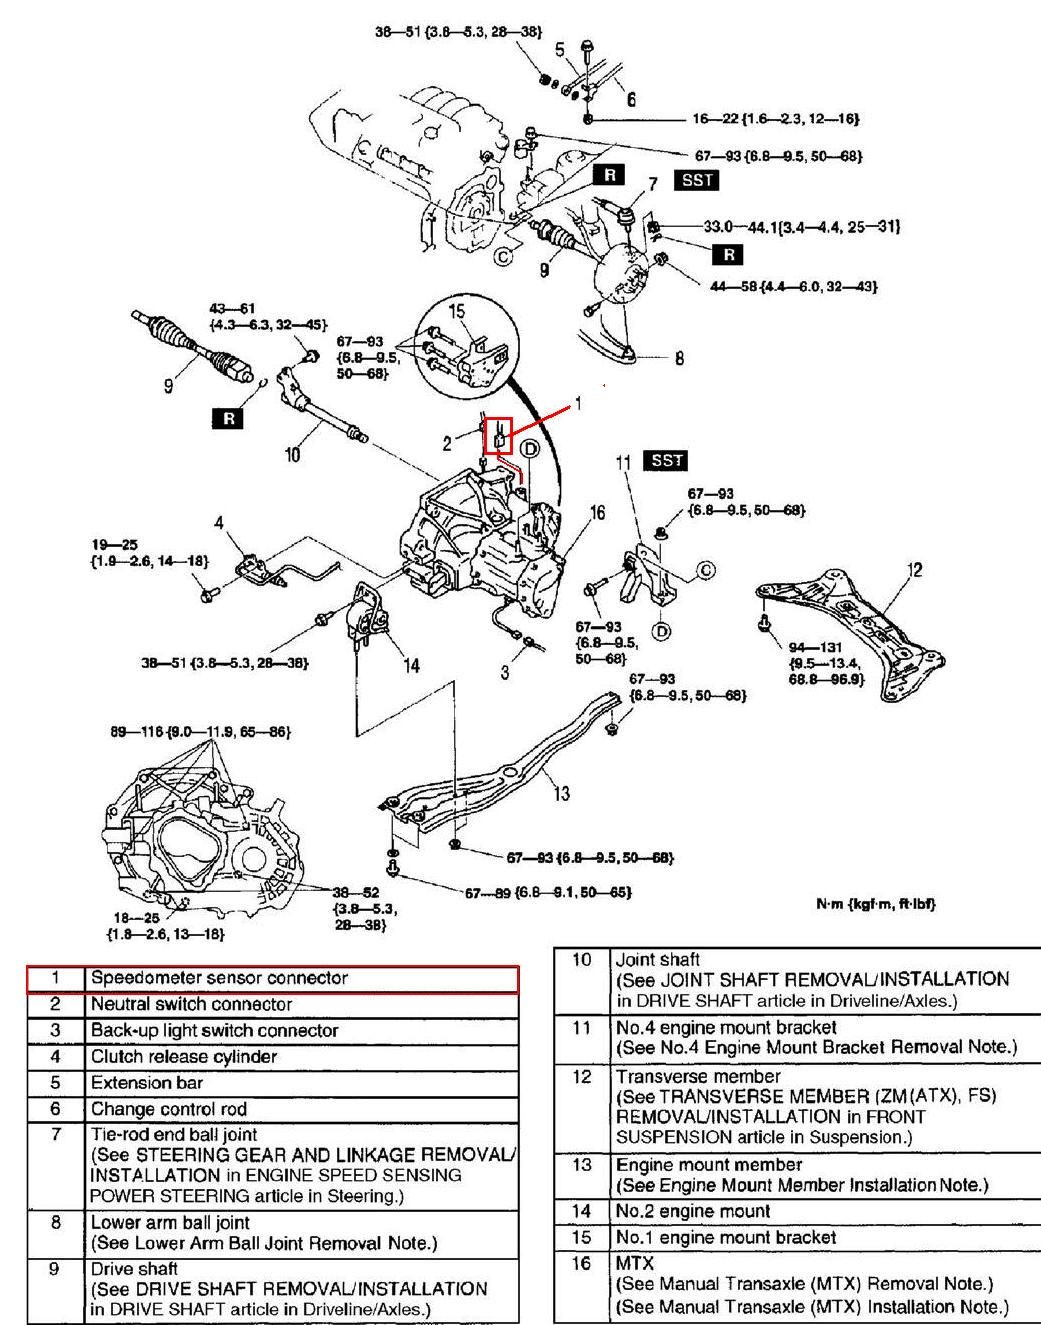 Rx8 Fuse Box Diagram likewise 4nxol Mazda Protege Change Vehical Speed Sensor Speedometer furthermore 2000 Toyota Tundra Bank 2 Sensor 1 Location as well 7920CH08 REMOVAL AND INSTALLATION furthermore 28521 92 Riviera Steering Column Electrical Issue. on mazda 626 engine diagram